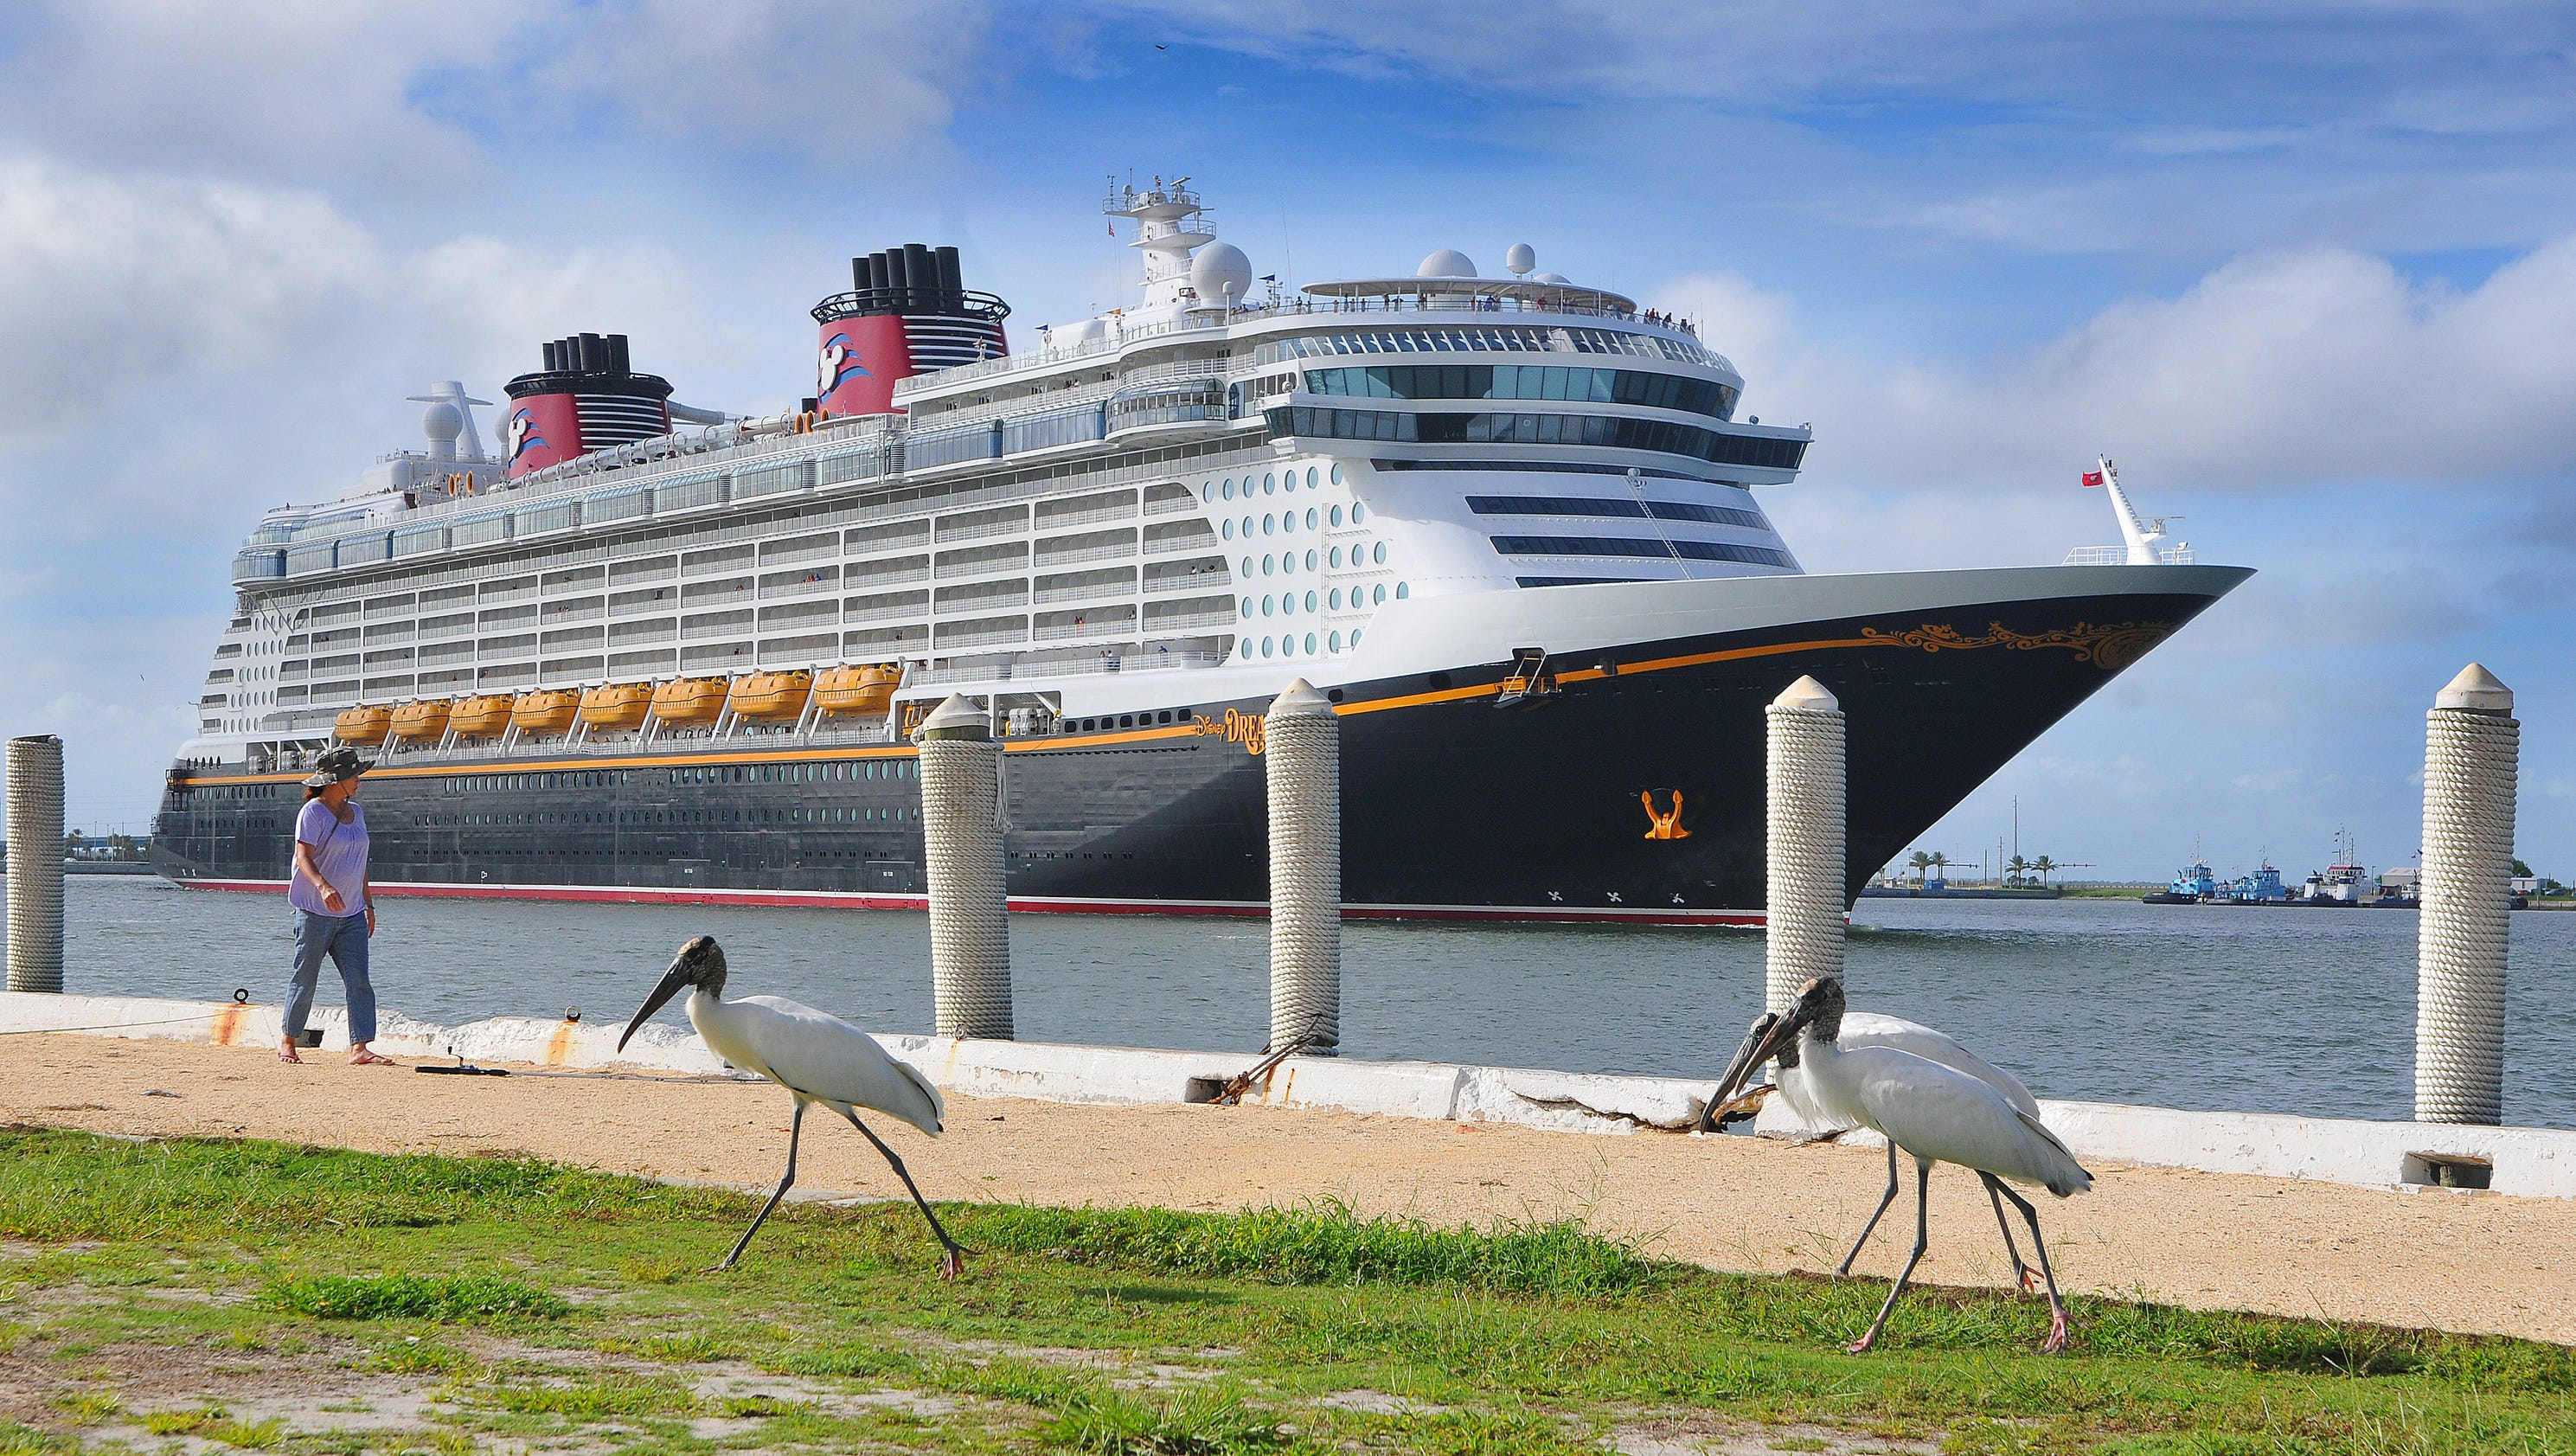 Port Canaveral ships reroute from Hurricane Matthew